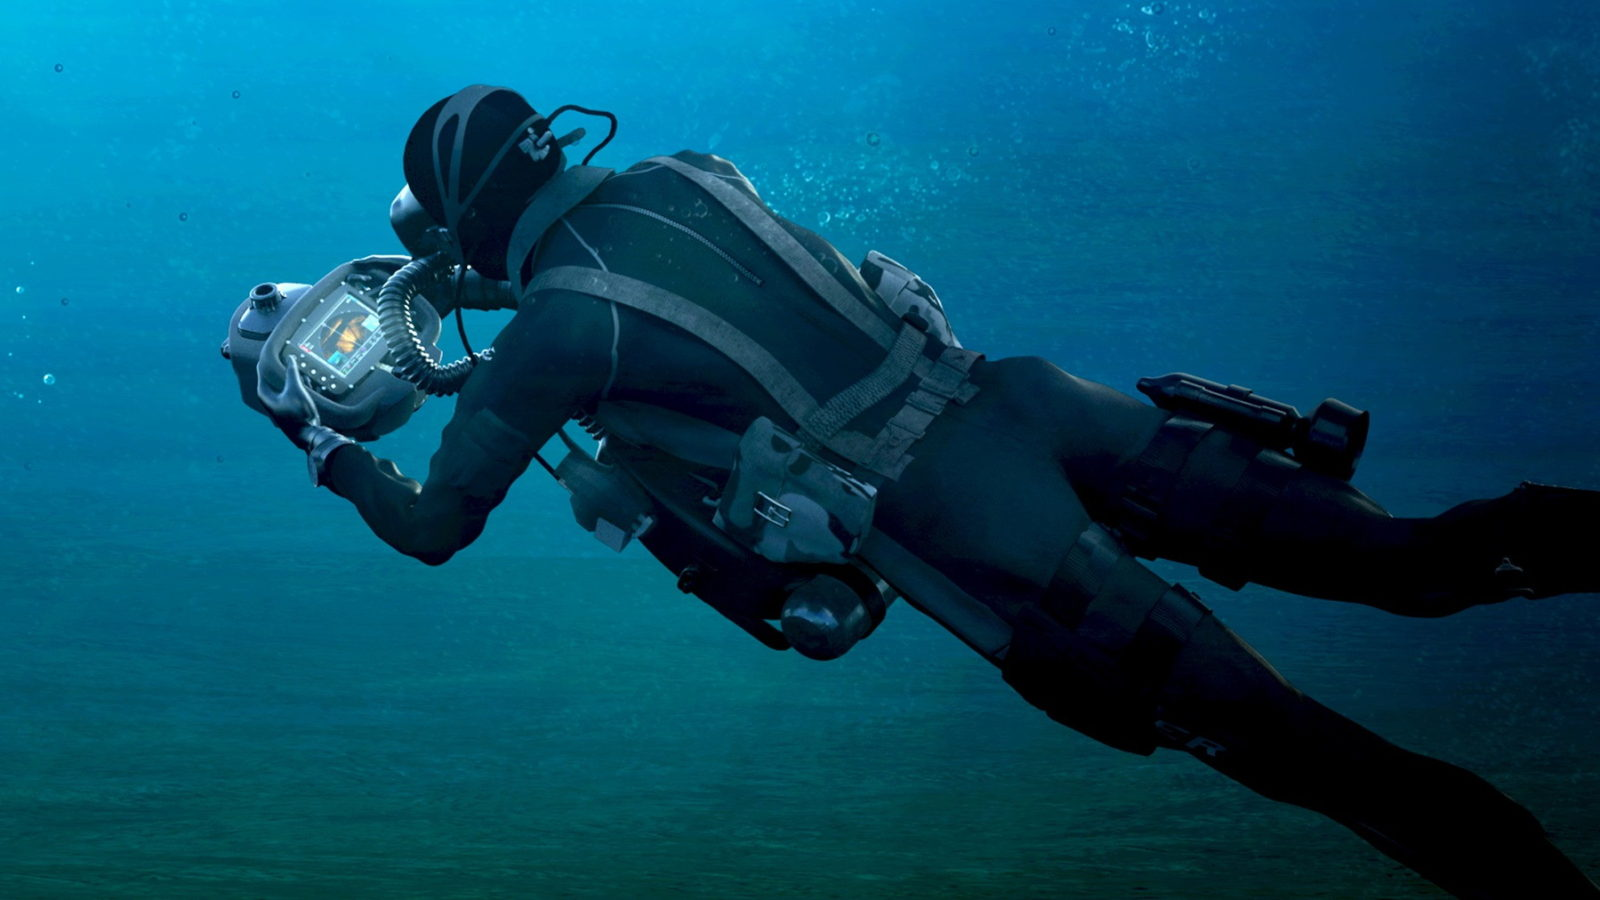 us.-army-to-operate-world's-first-cutting-edge-military-underwater-navigation-system